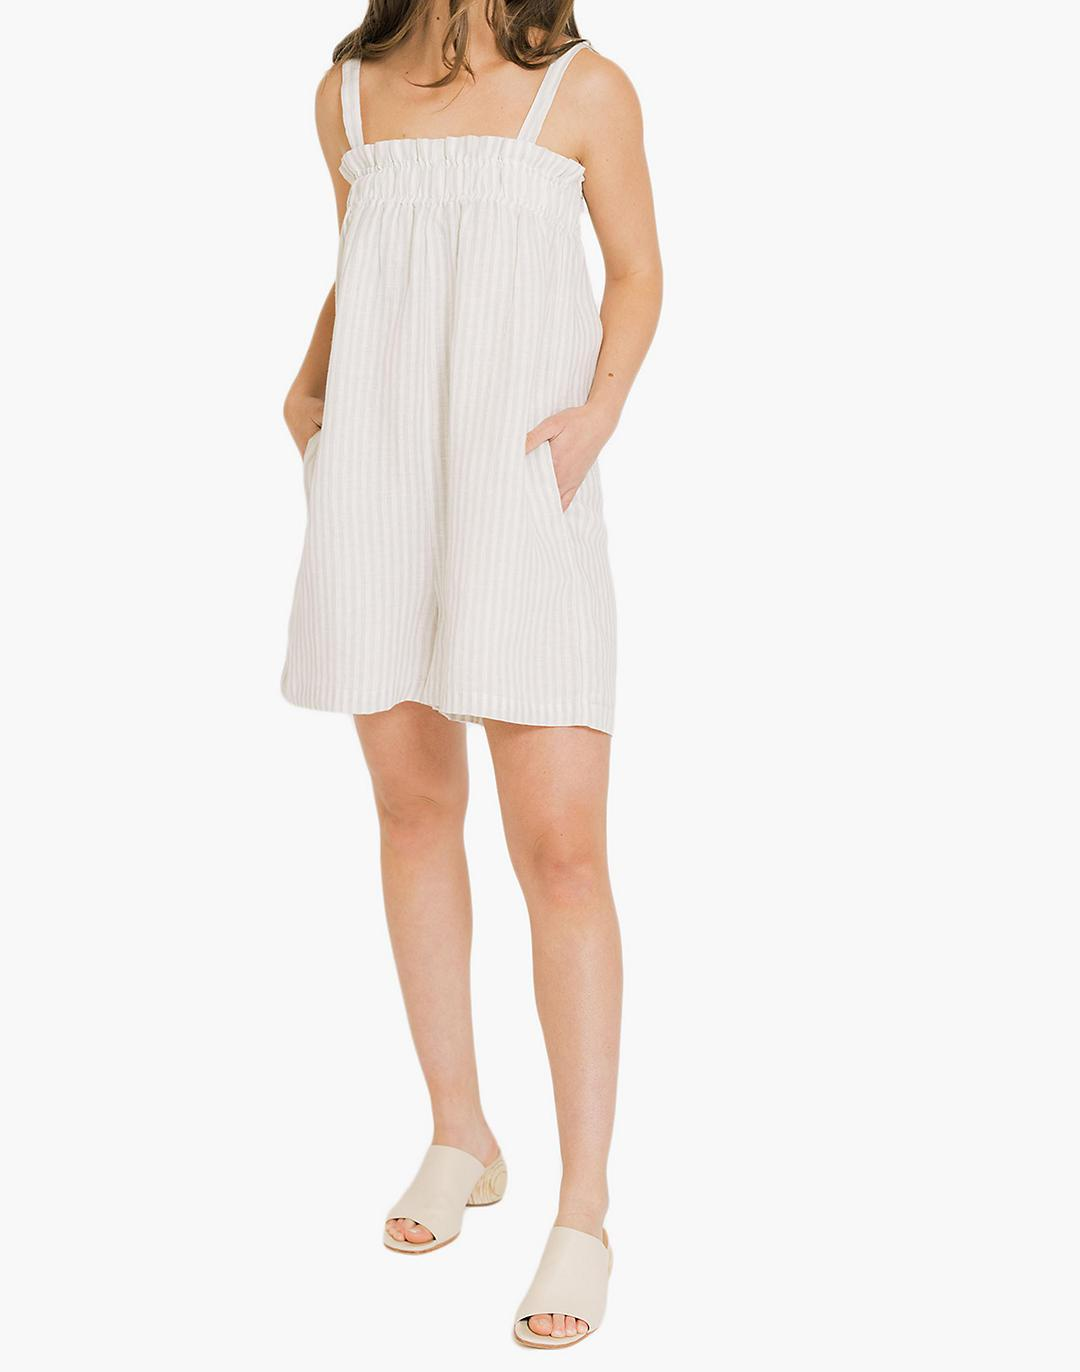 Madewell x LAUDE the Label Thea Romper